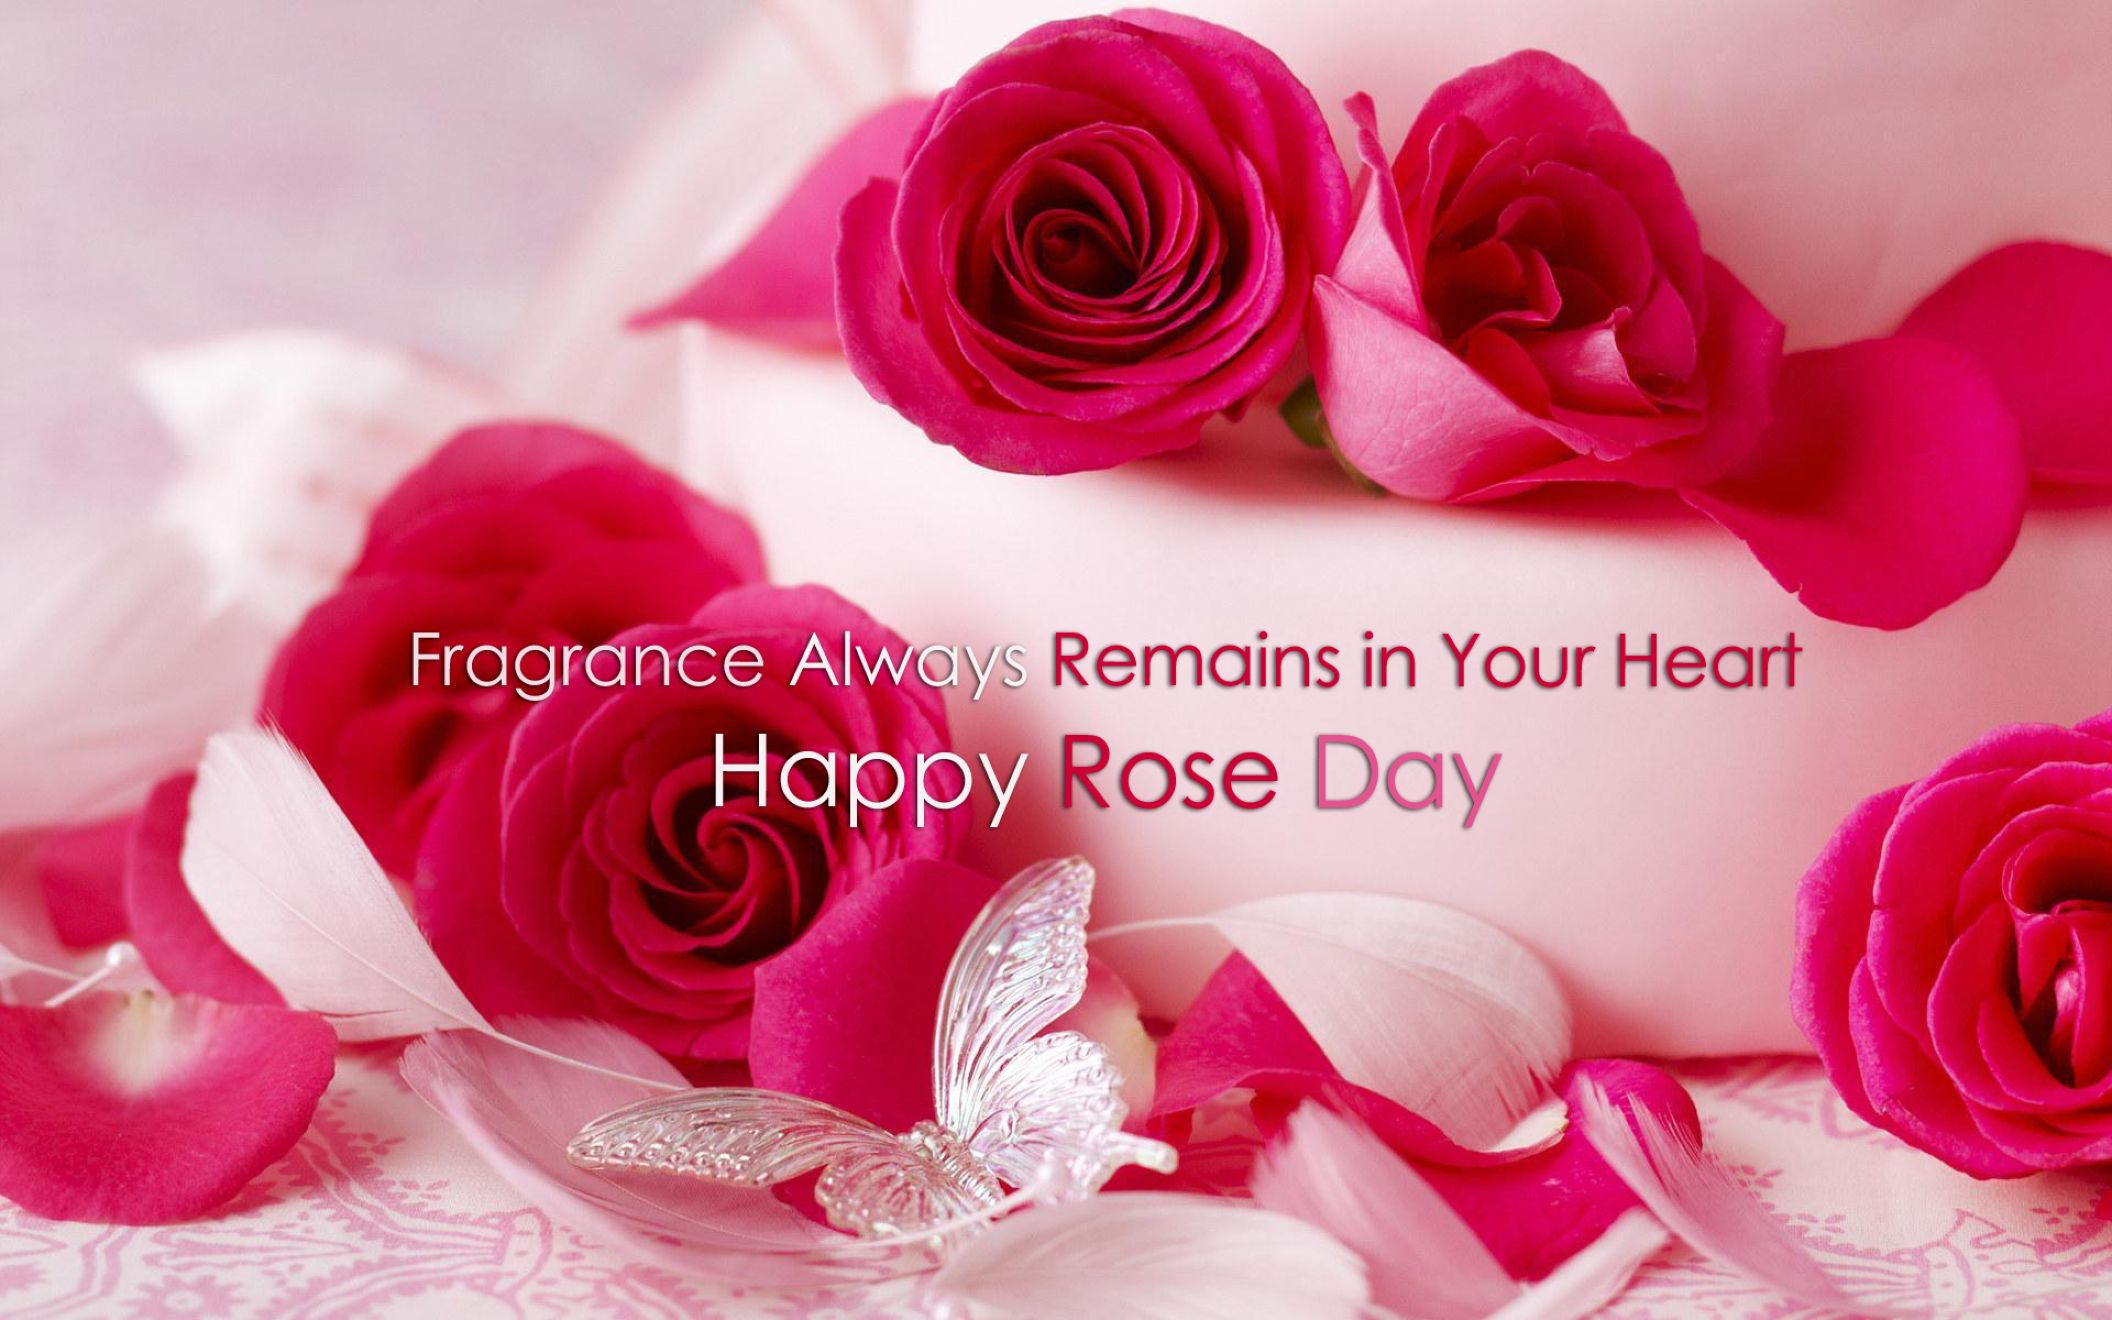 Happy Rose Day 2016 Red Rose With Love Quotes Wallpaper Desktop 2112x1320